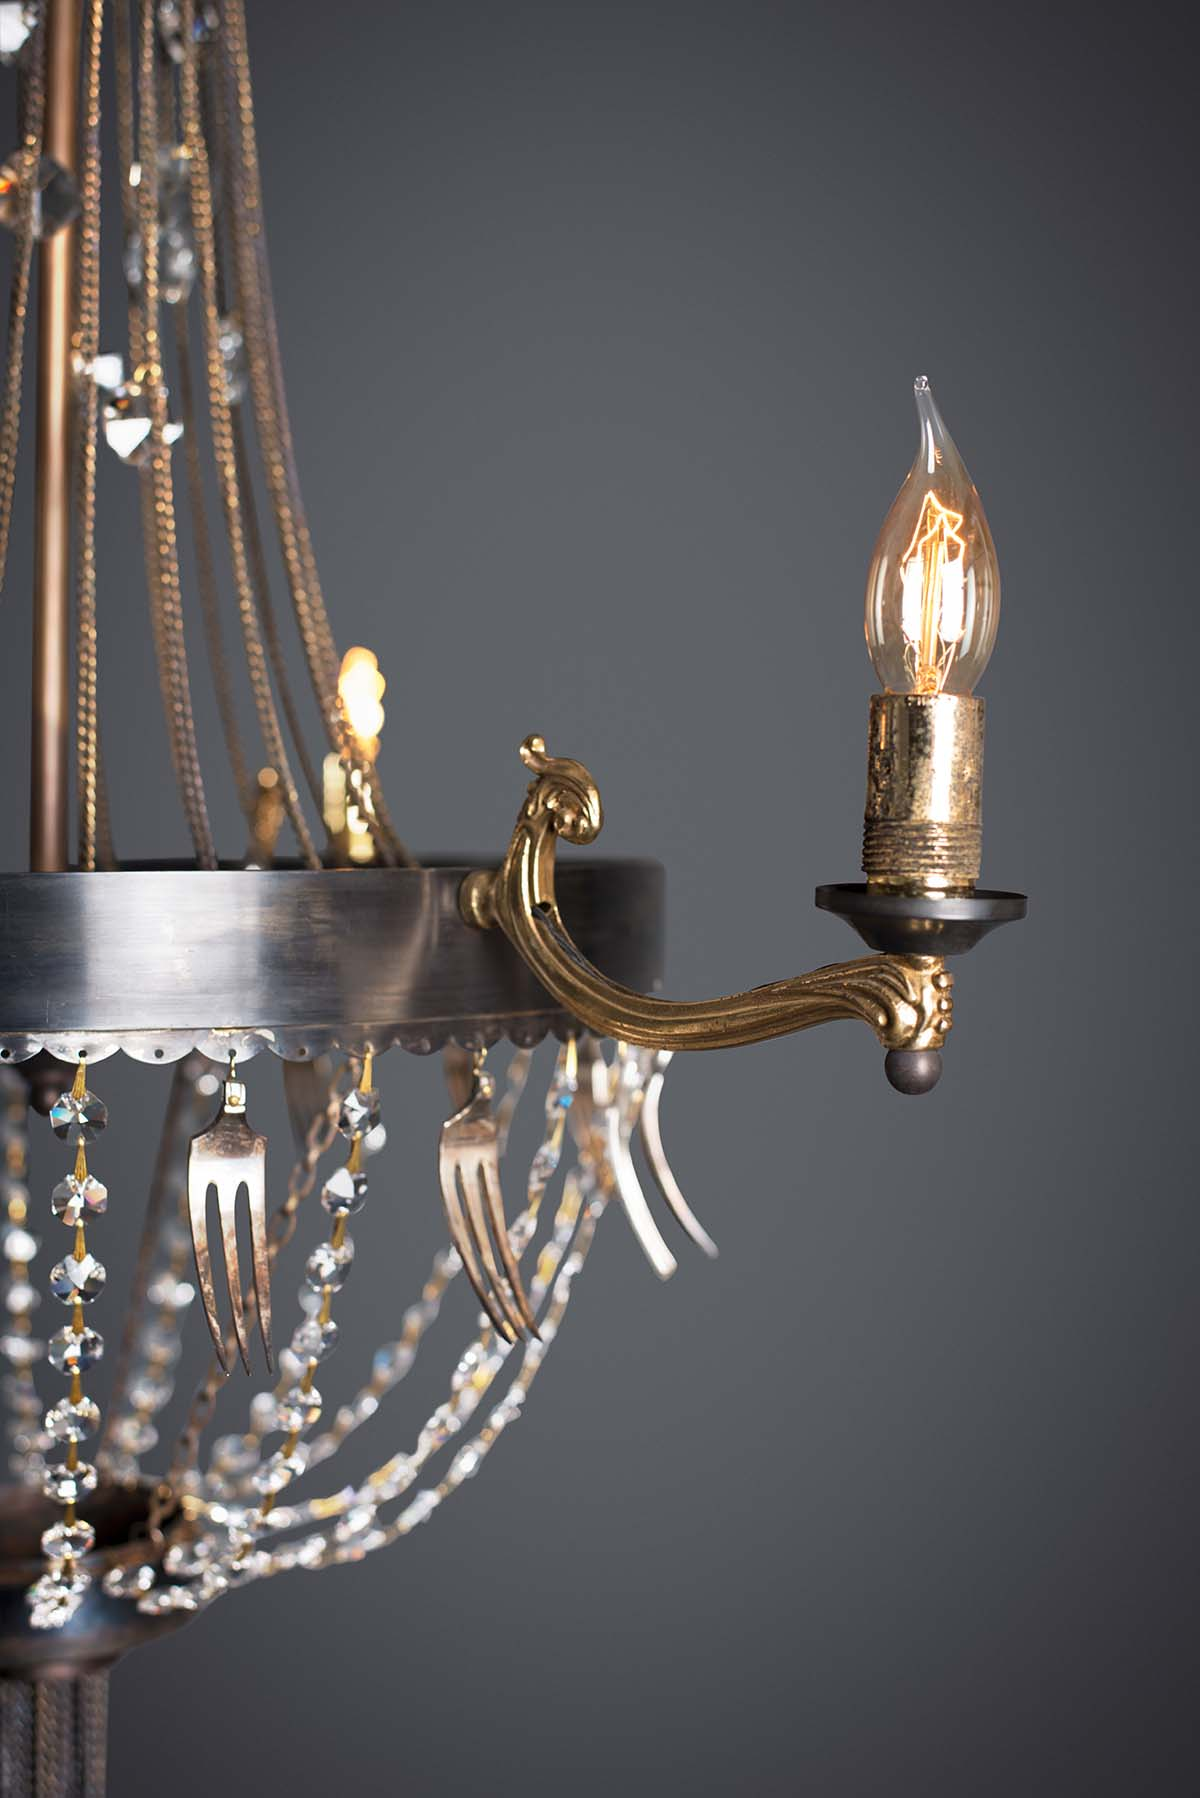 detail of Ambrosia small chandelier made from Recycled materials and vintage cutlery. In an antique finish.